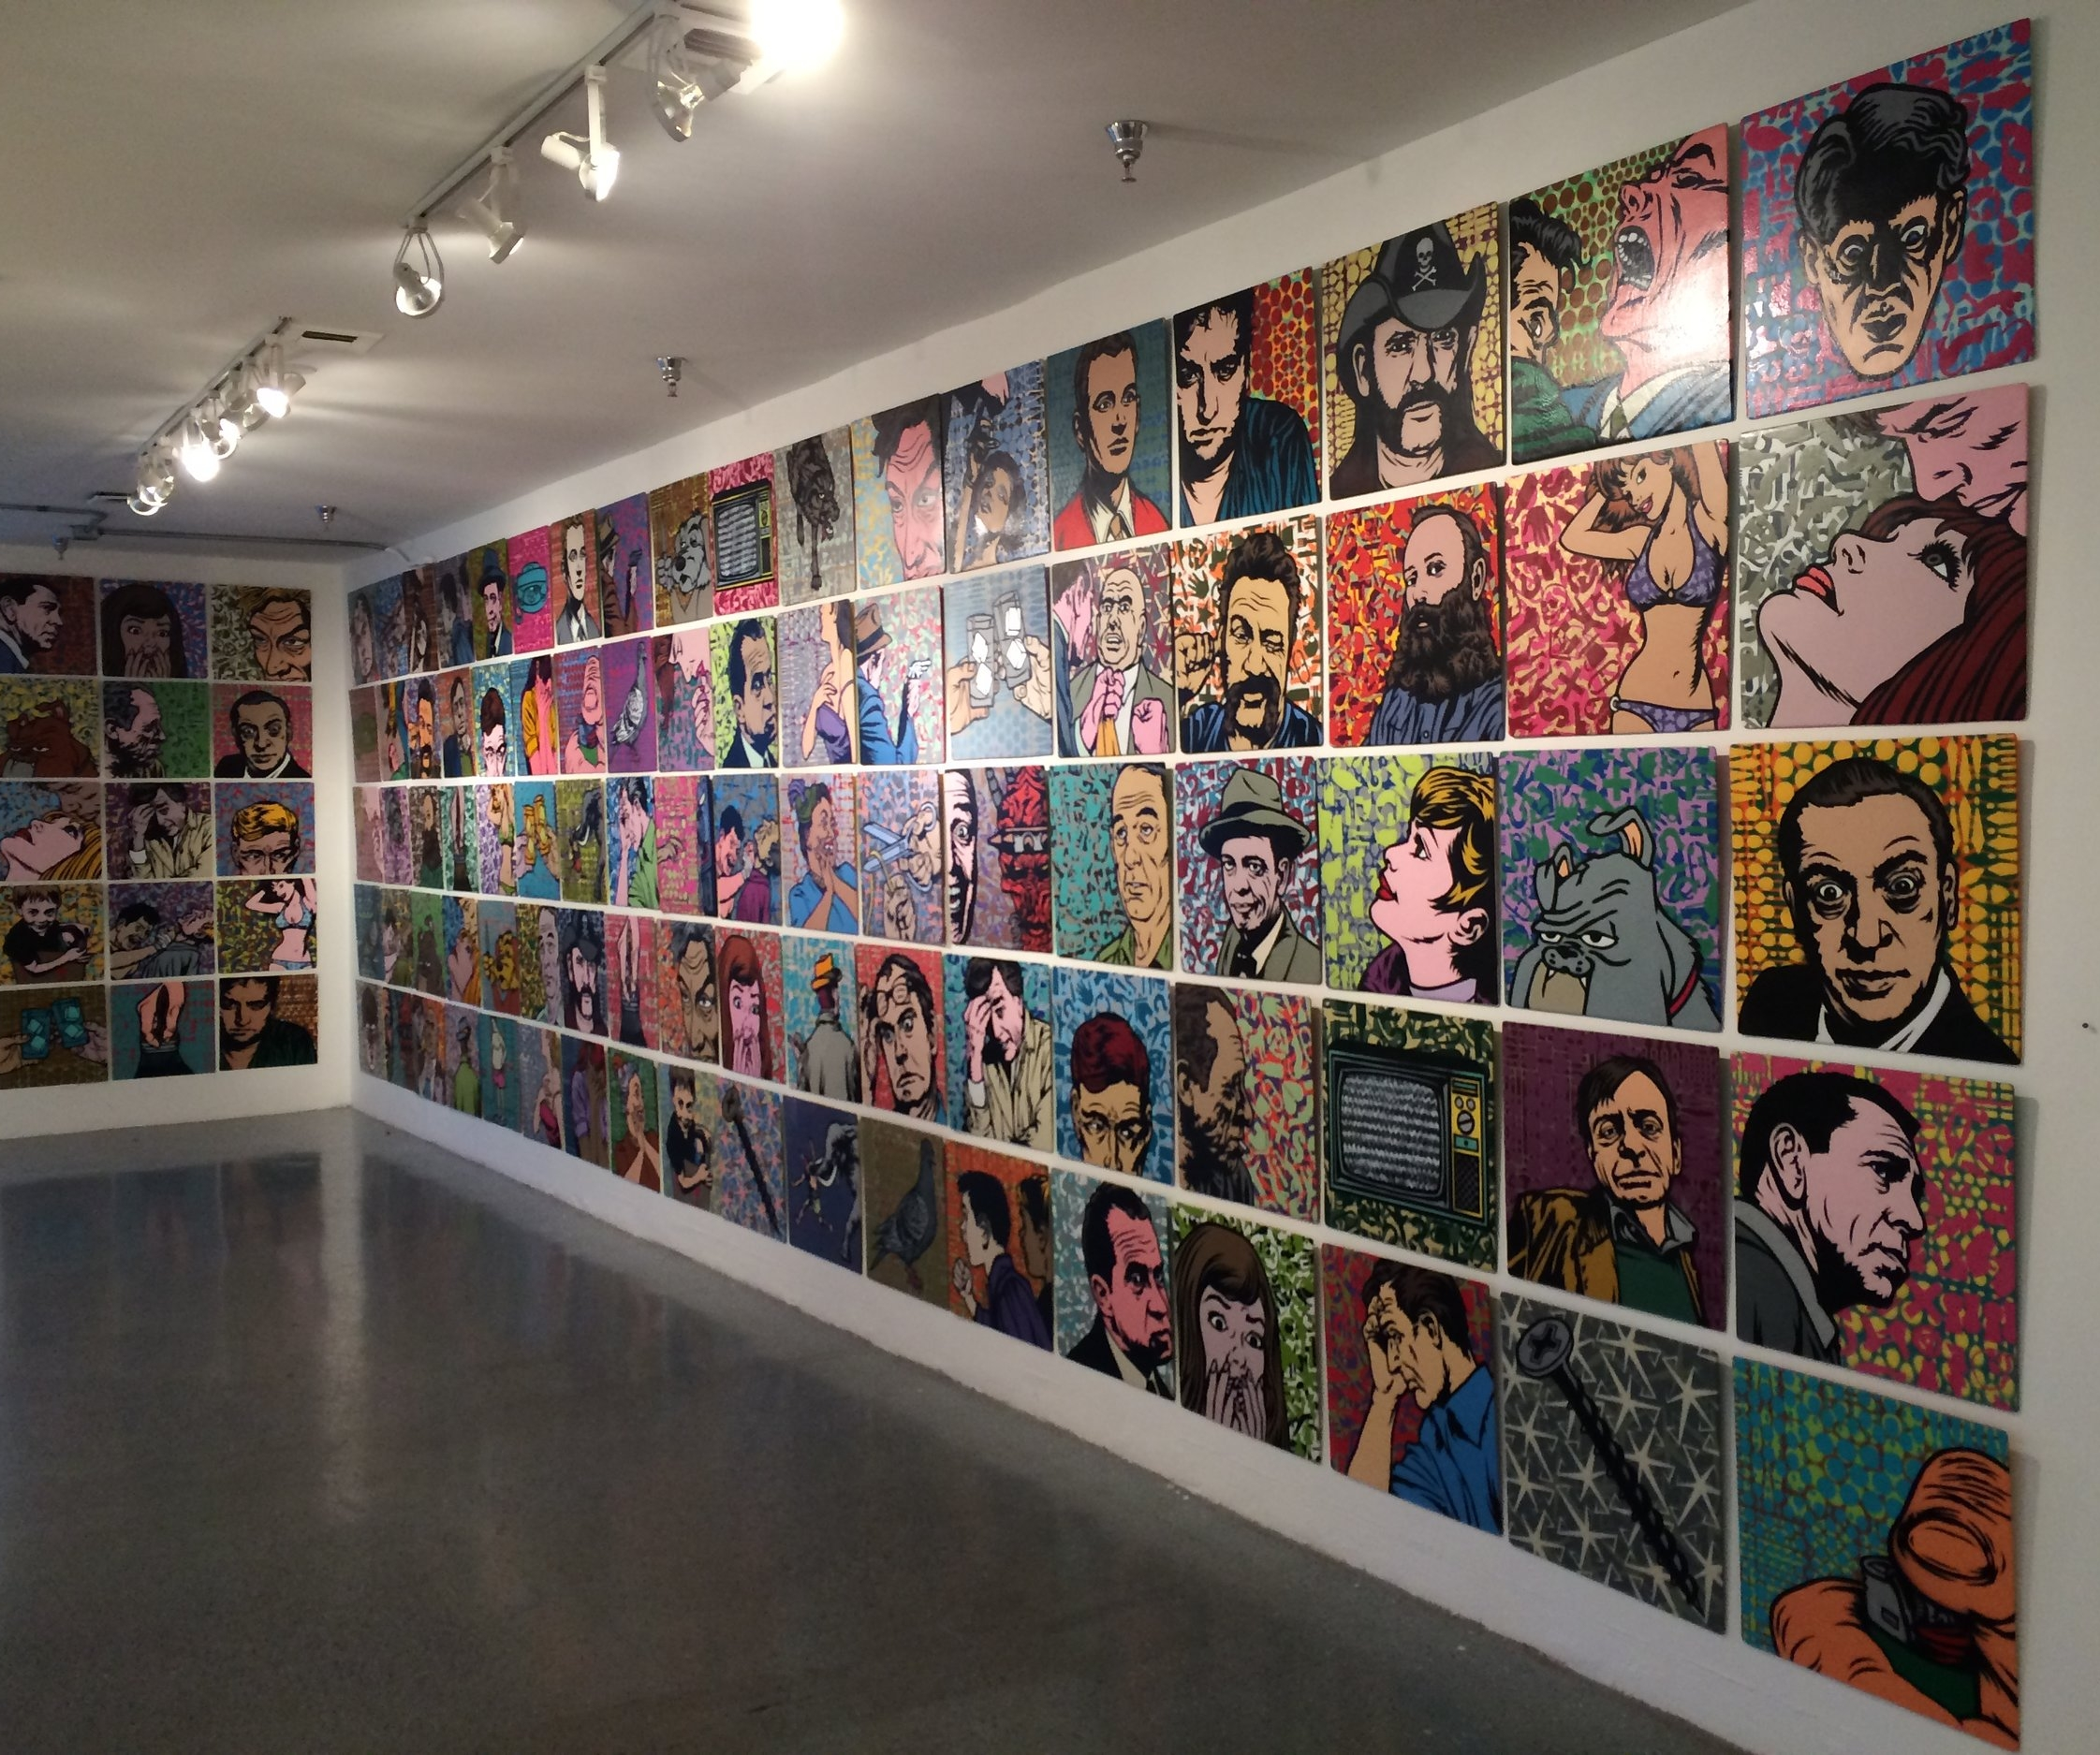 """Stencil paintings/installation for """"Mostly friends, sorta"""" show. Los Angeles, 2015"""